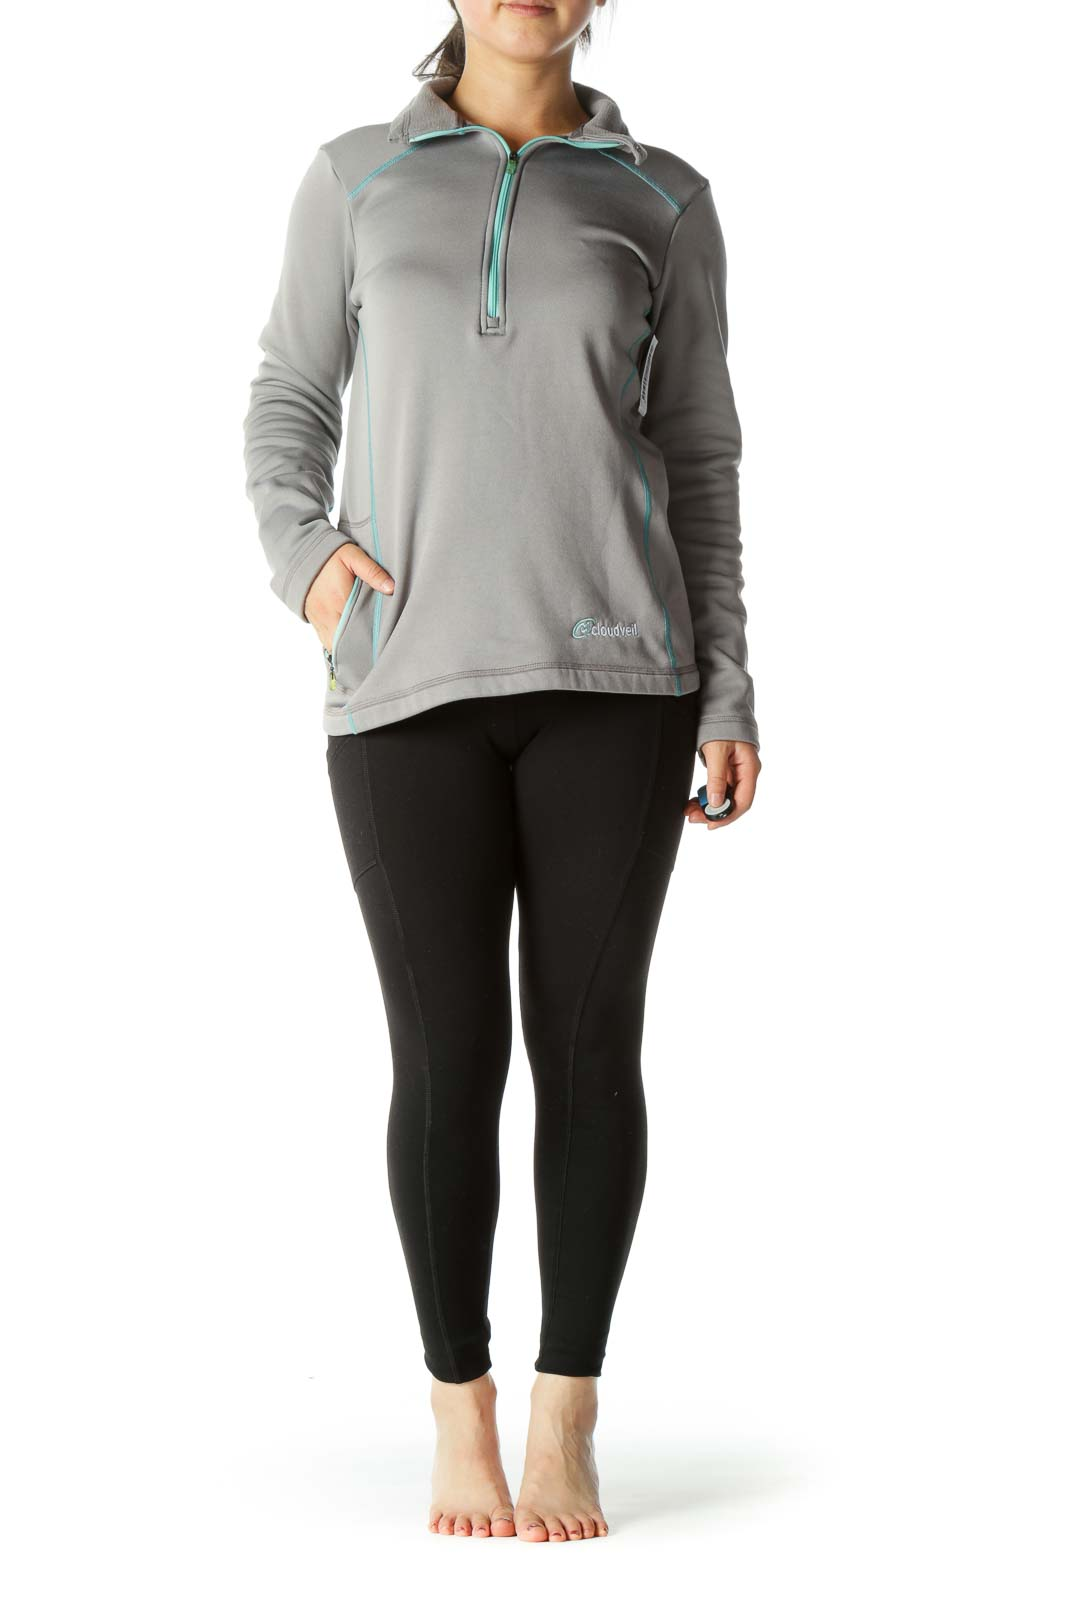 Grey and Teal High Neck Zippered Sports Jacket